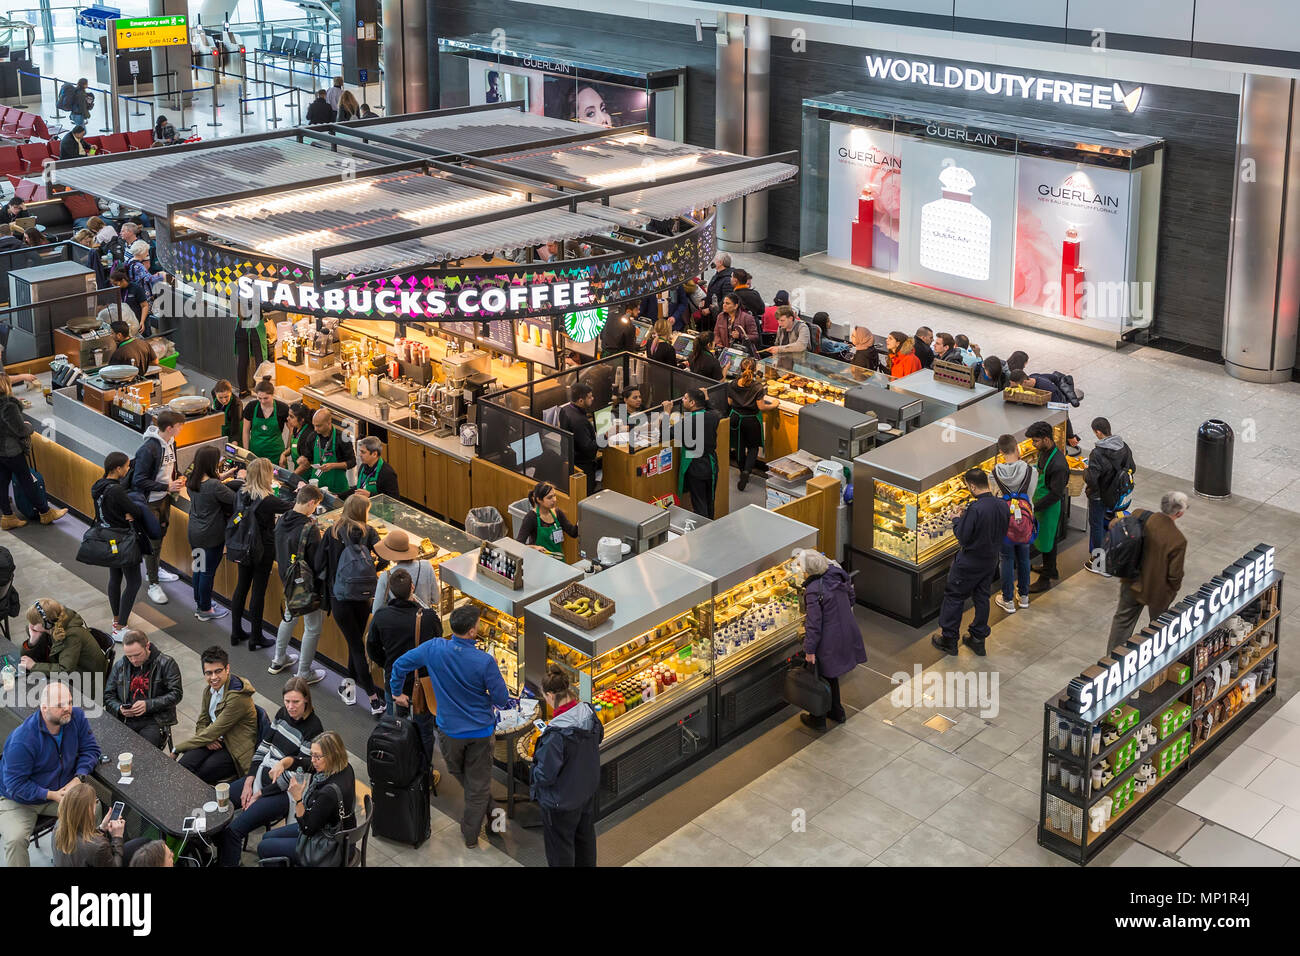 Starbucks Coffee And Duty Free Sign At Heathrow Airport